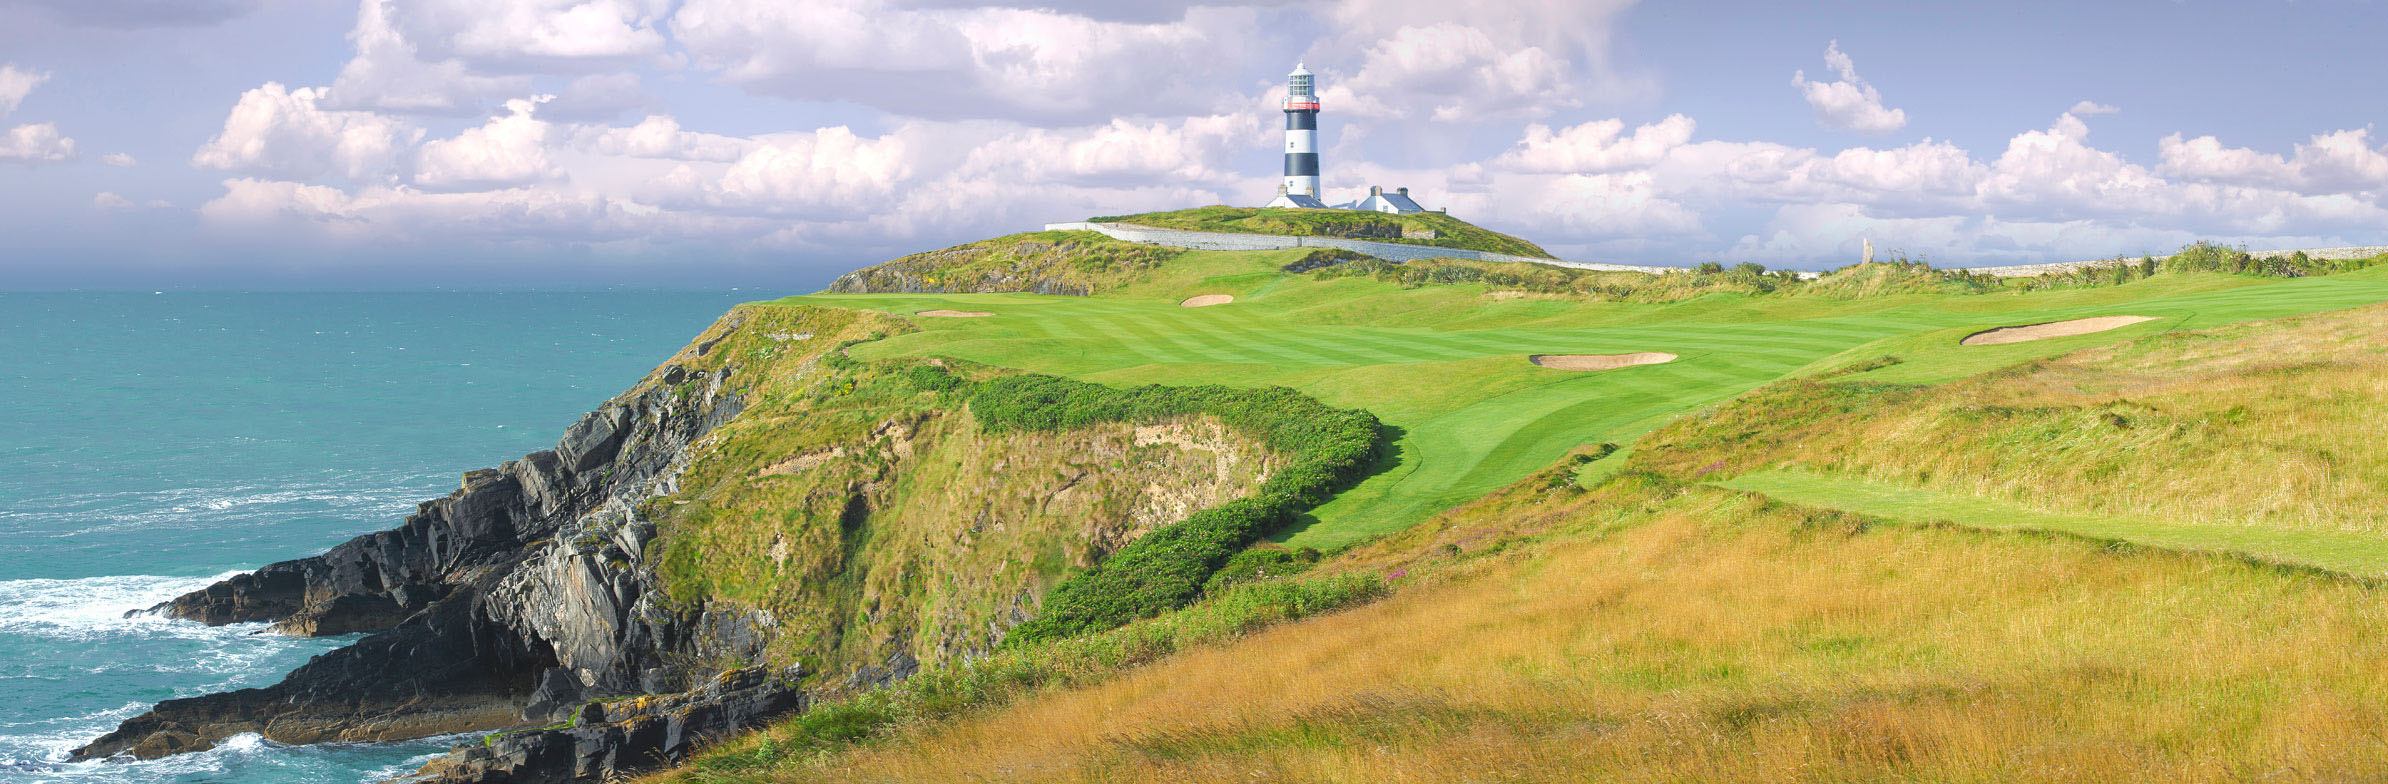 Golf Course Image - Old Head No. 4